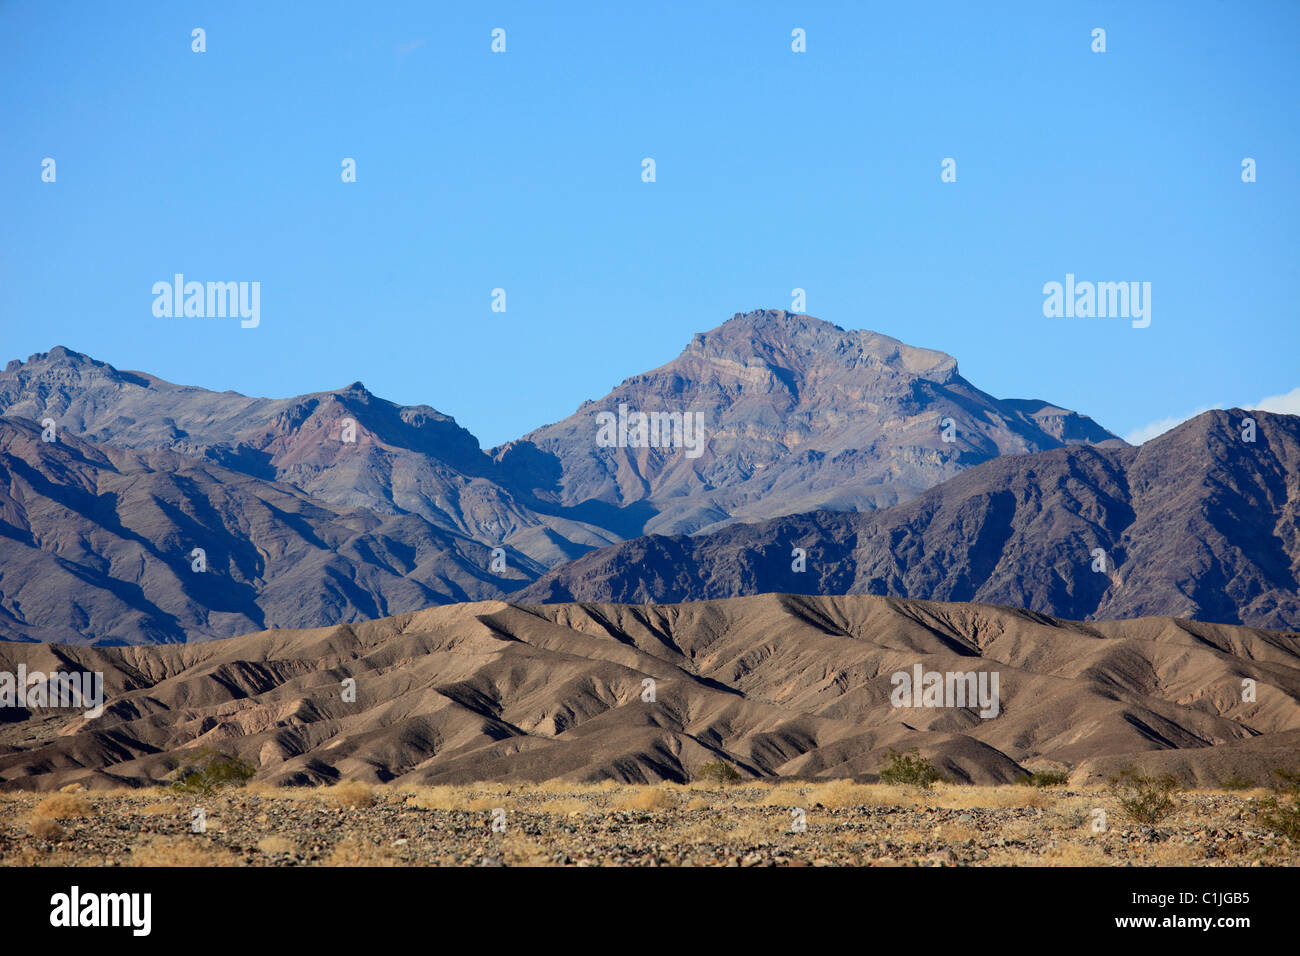 USA, California, Death Valley, National Park, Grapevine Mountains, - Stock Image